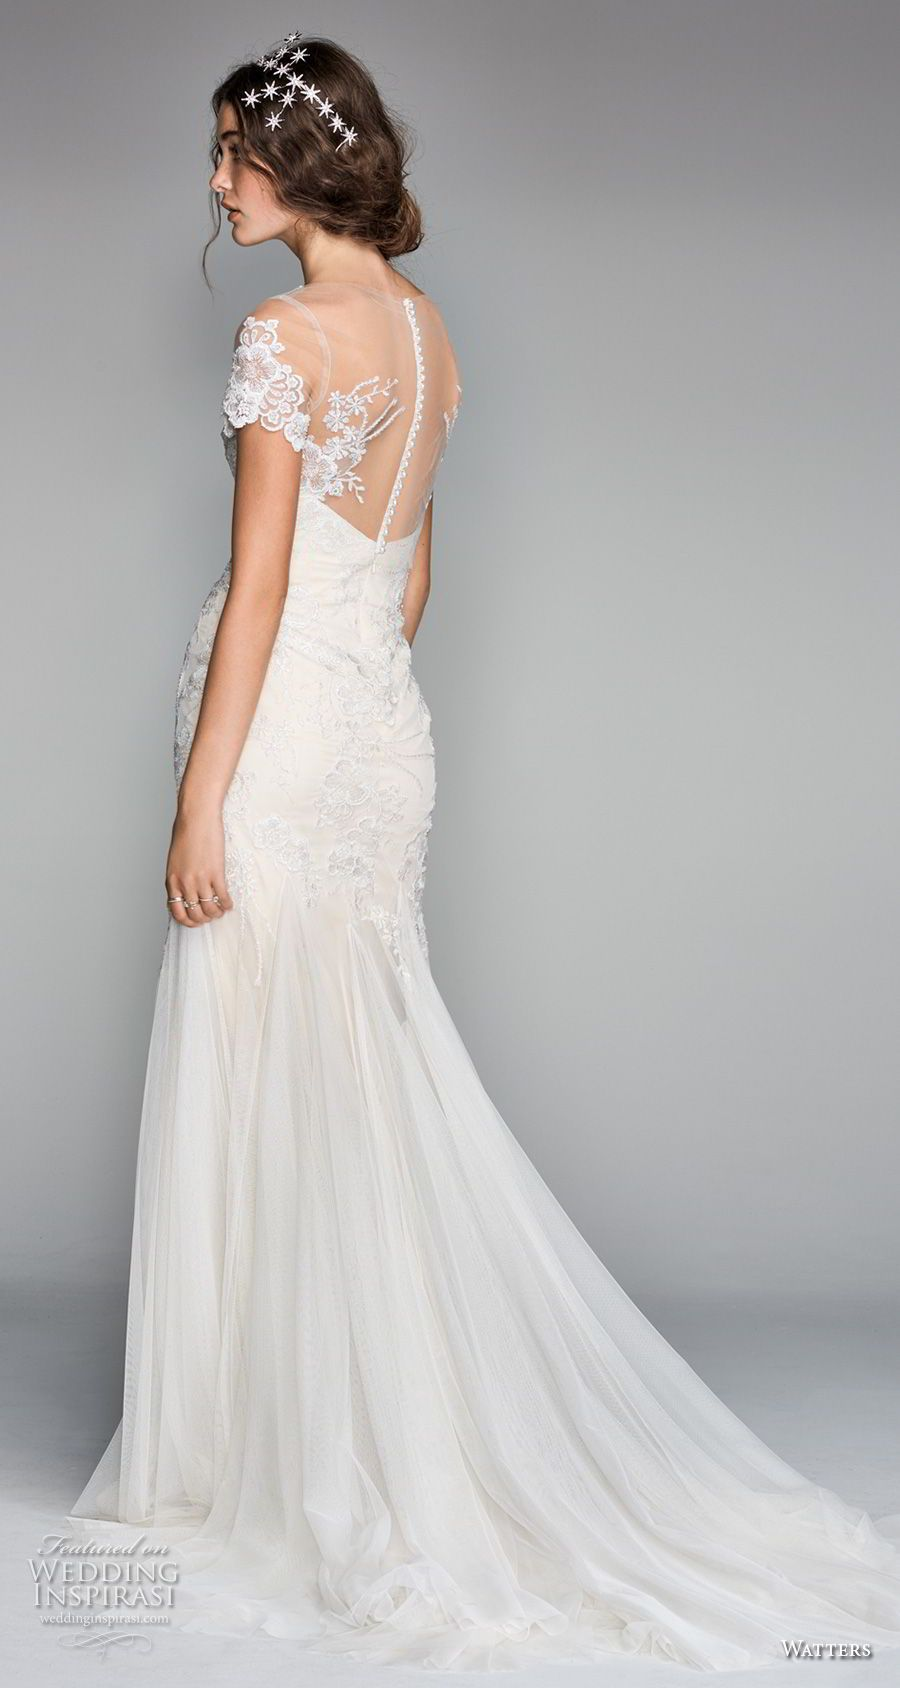 Willowby by watters spring wedding dresses pinterest chapel